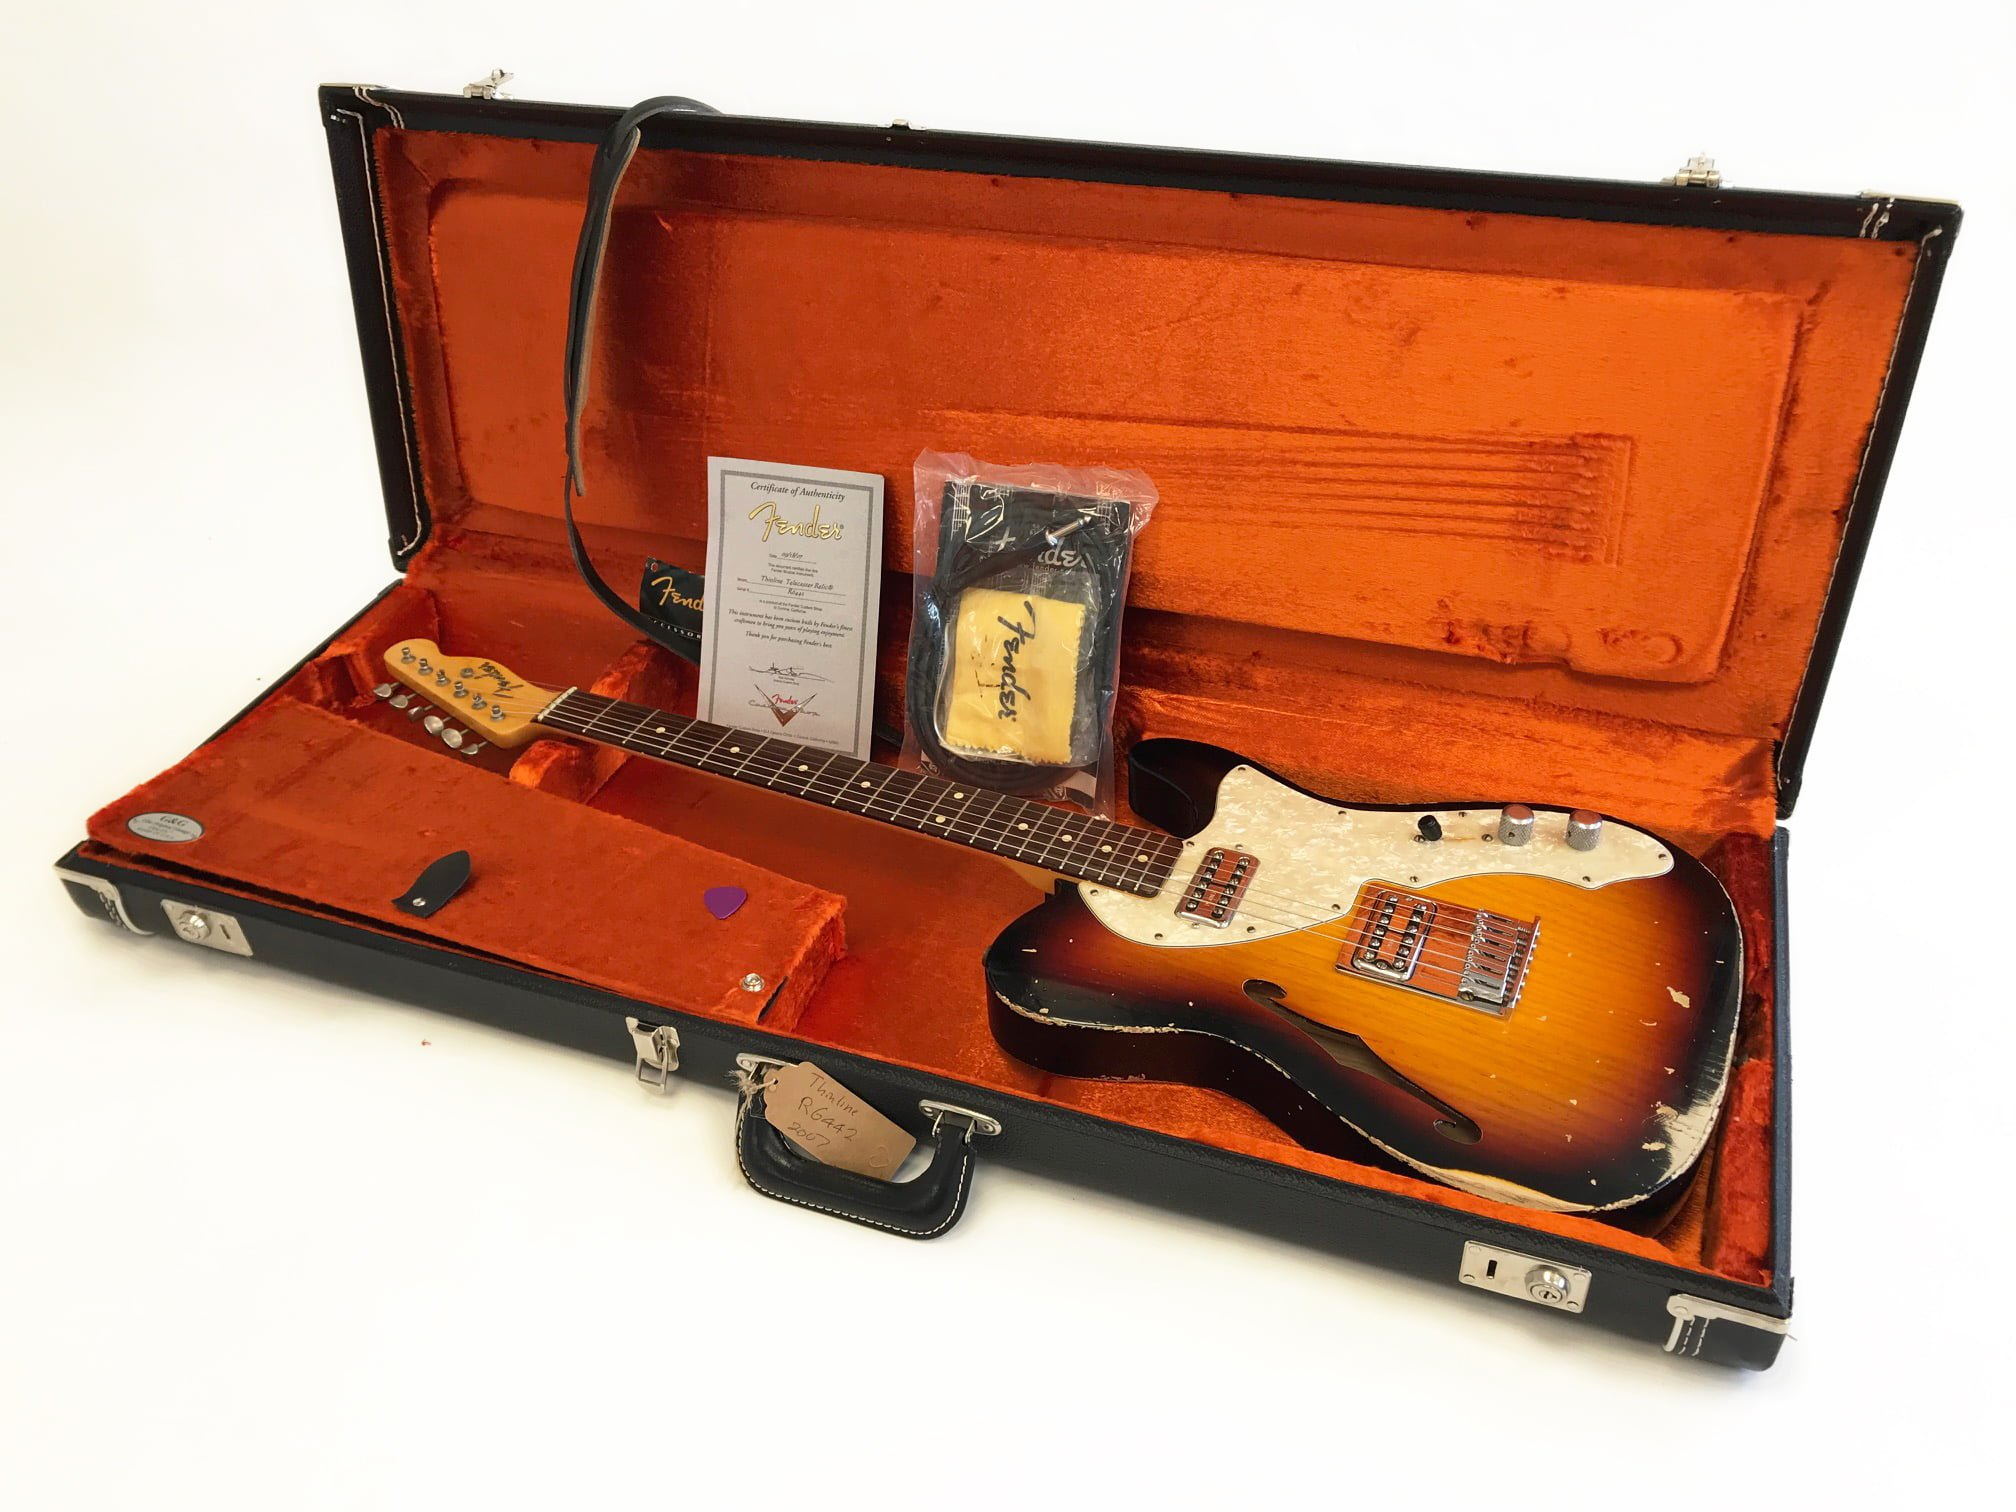 Current Stock - Vintage Guitars - Coffee House Guitars